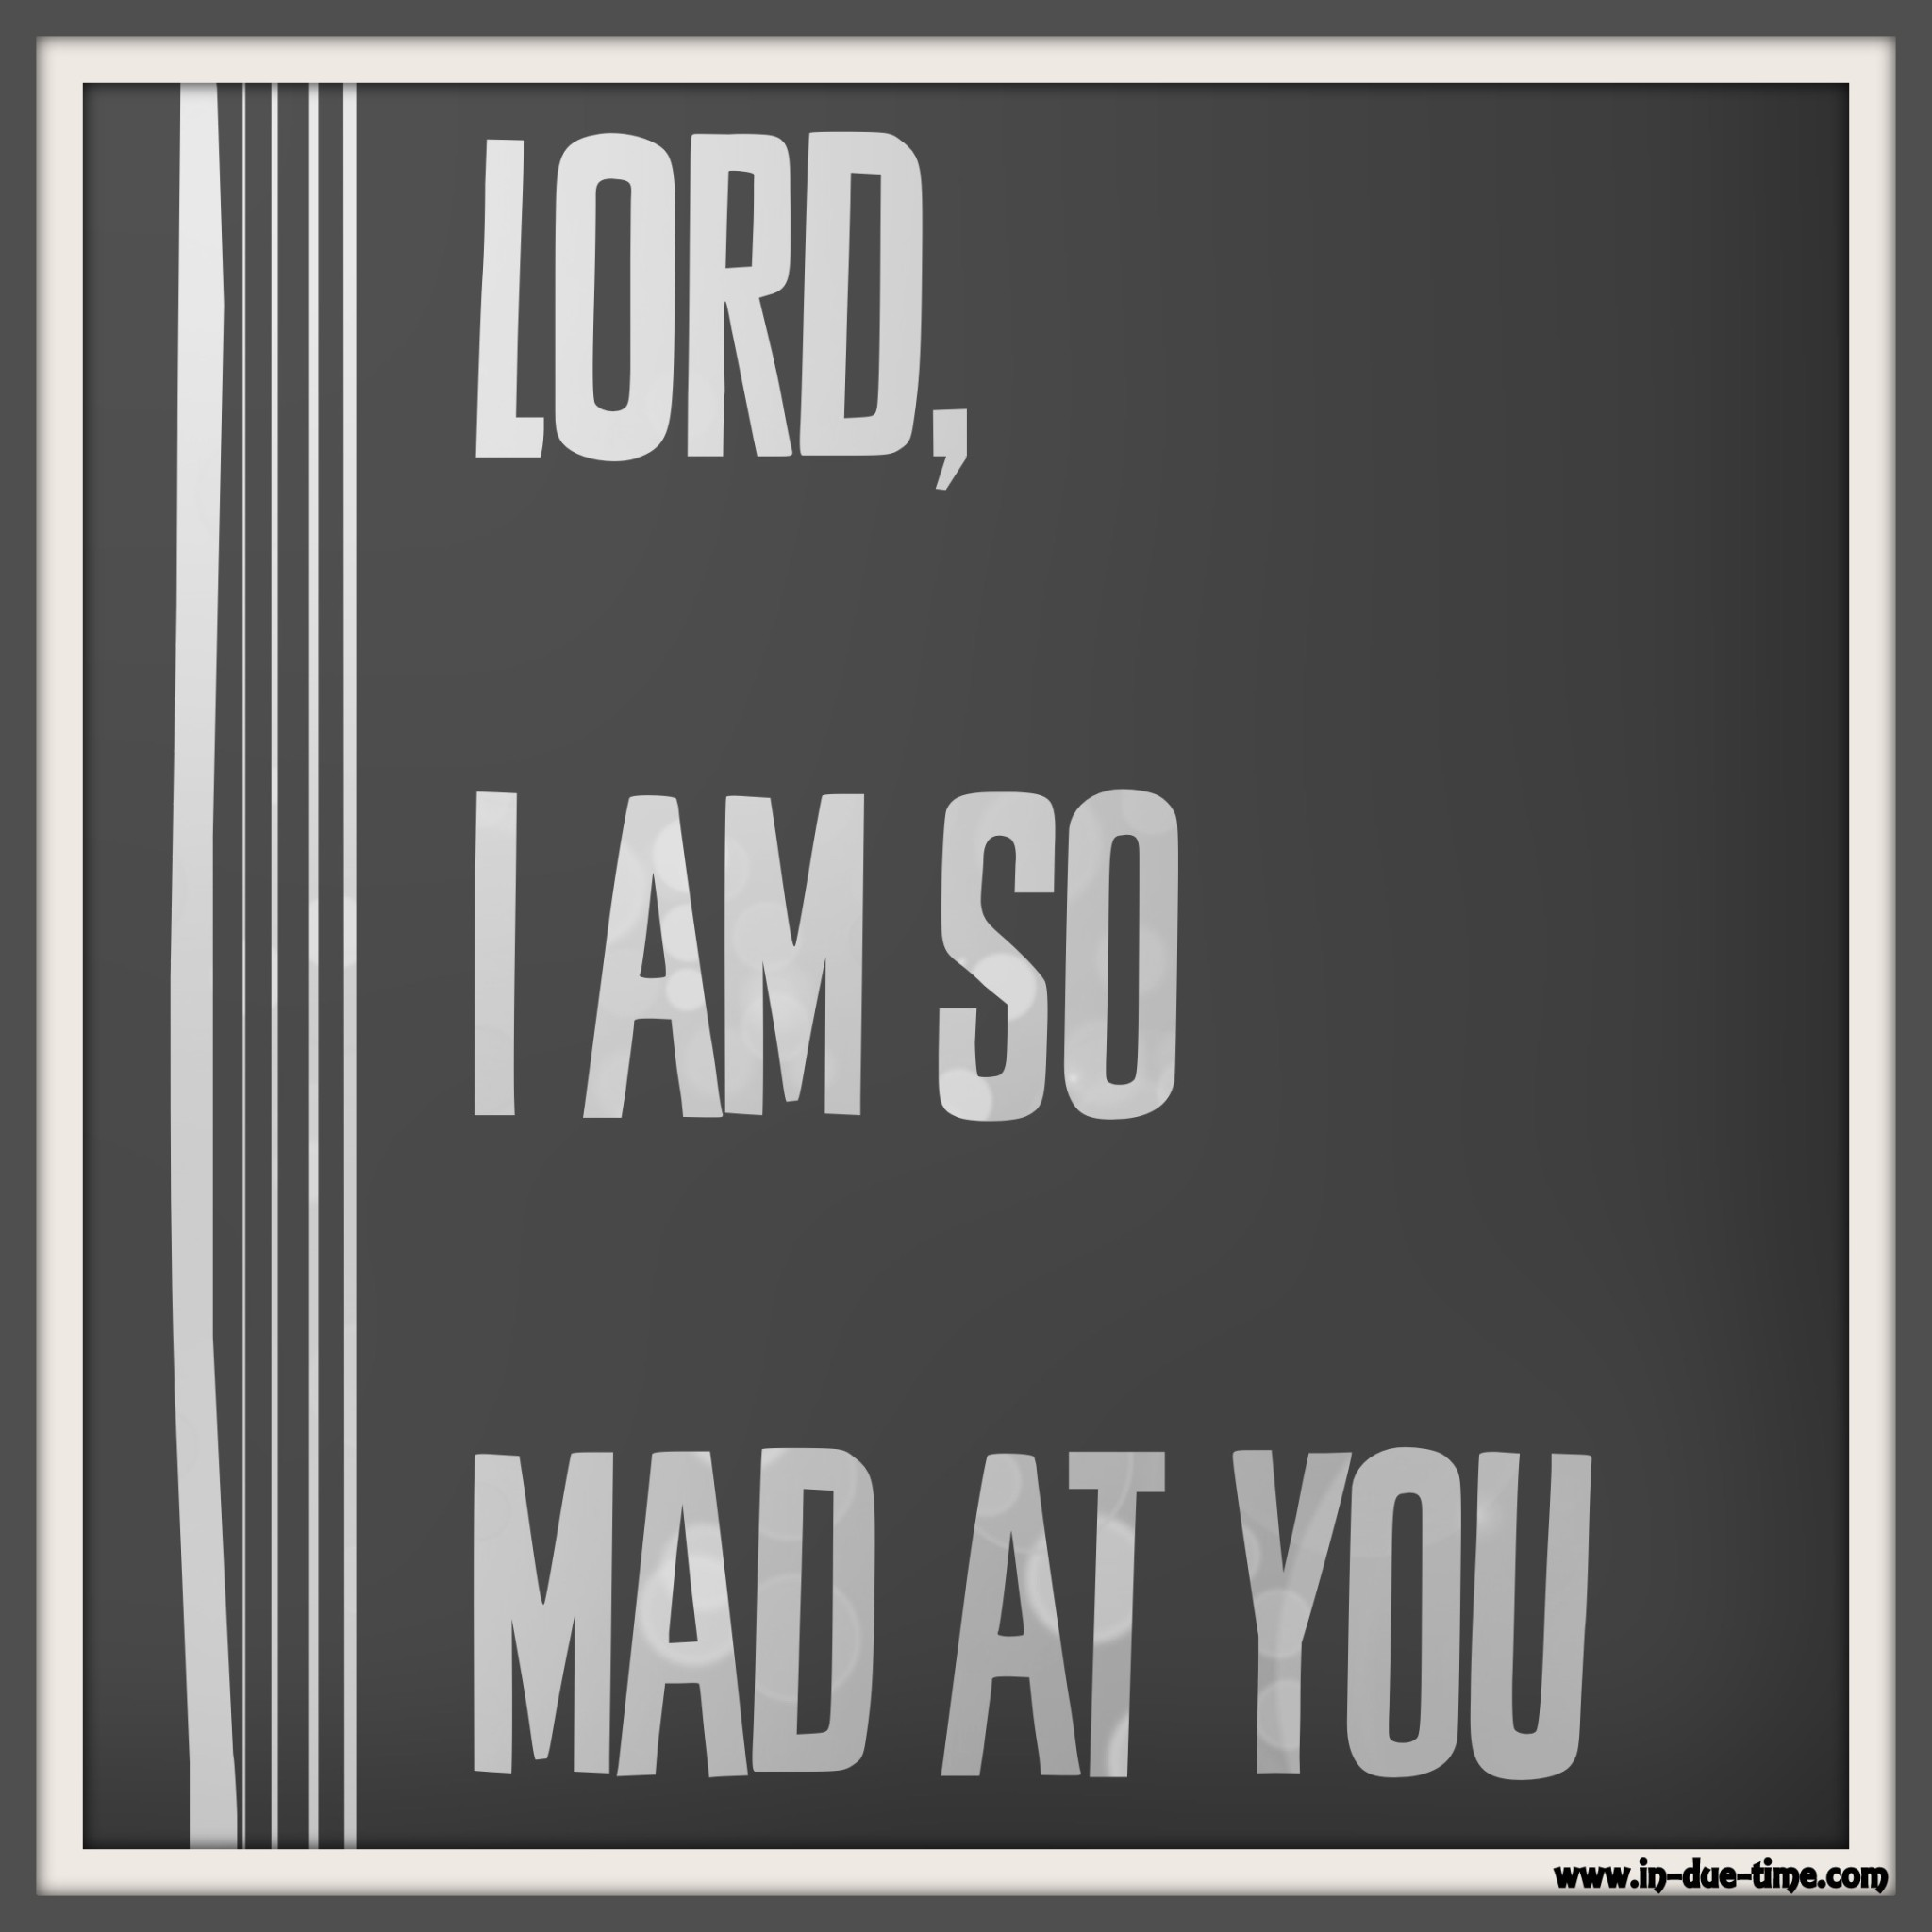 Lord, I am so mad at you - In Due Time Blog